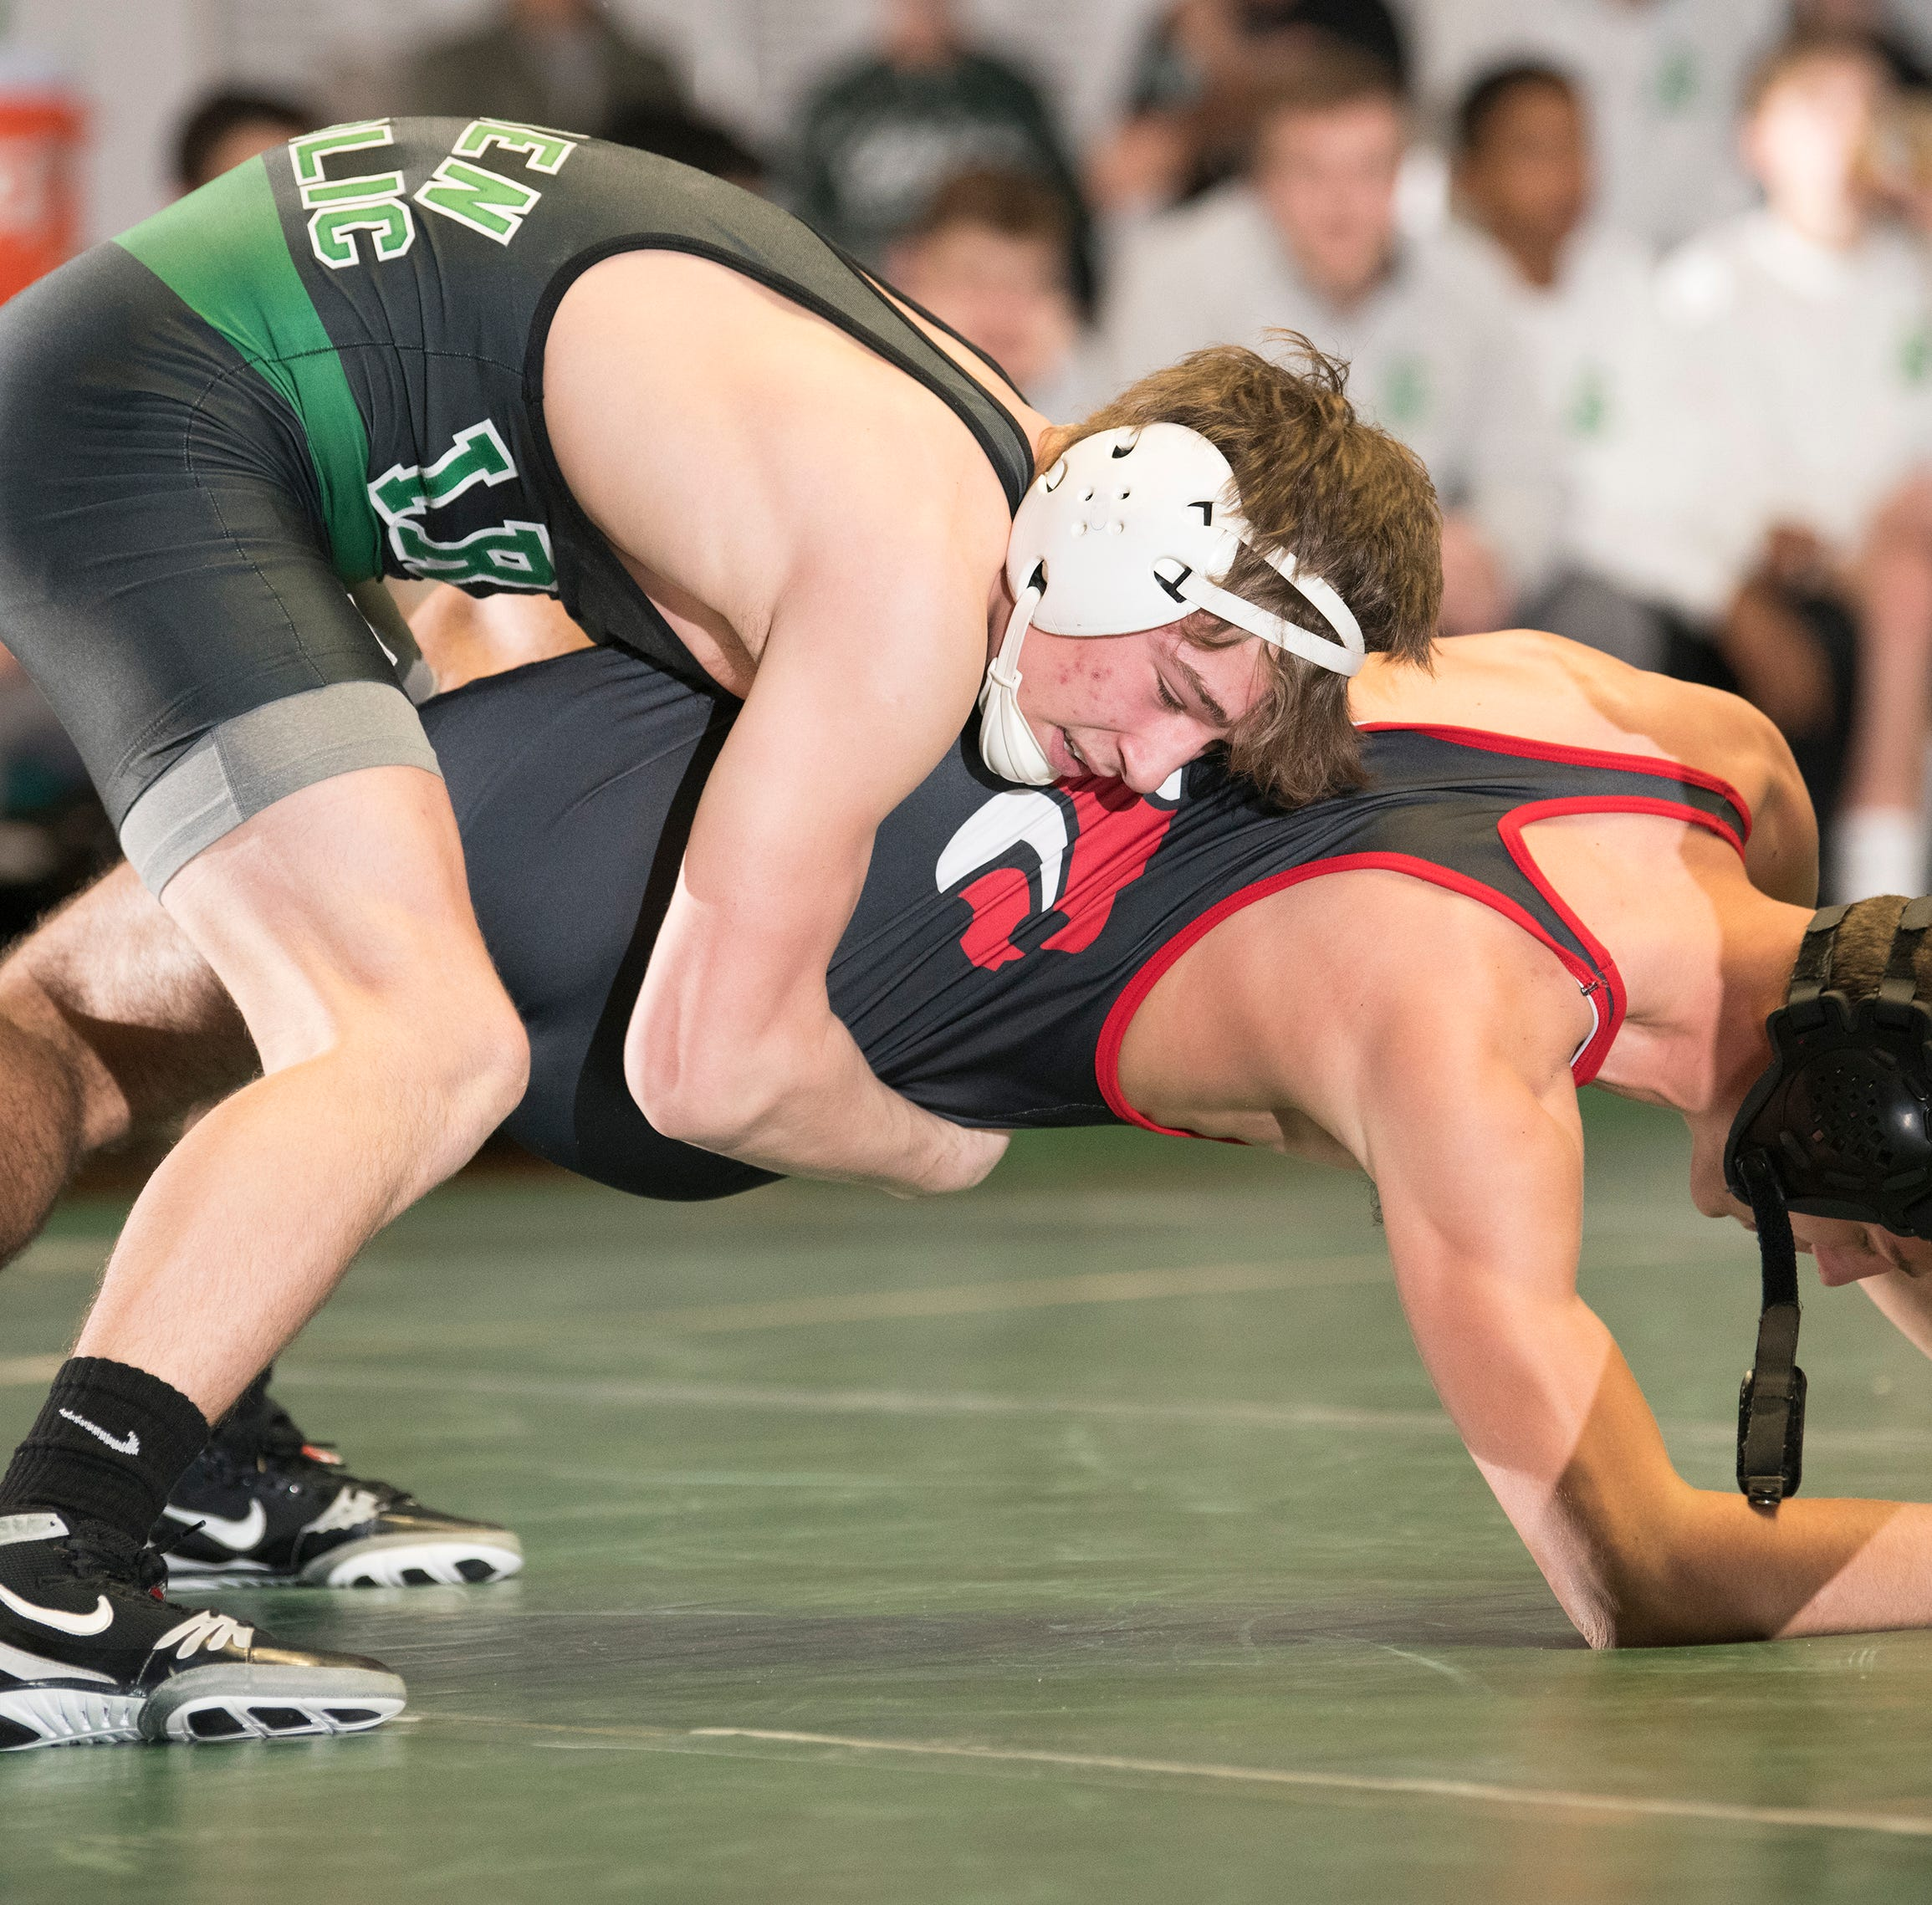 H.S. wrestling: Revano packs a punch in return, Irish knock out Jackson